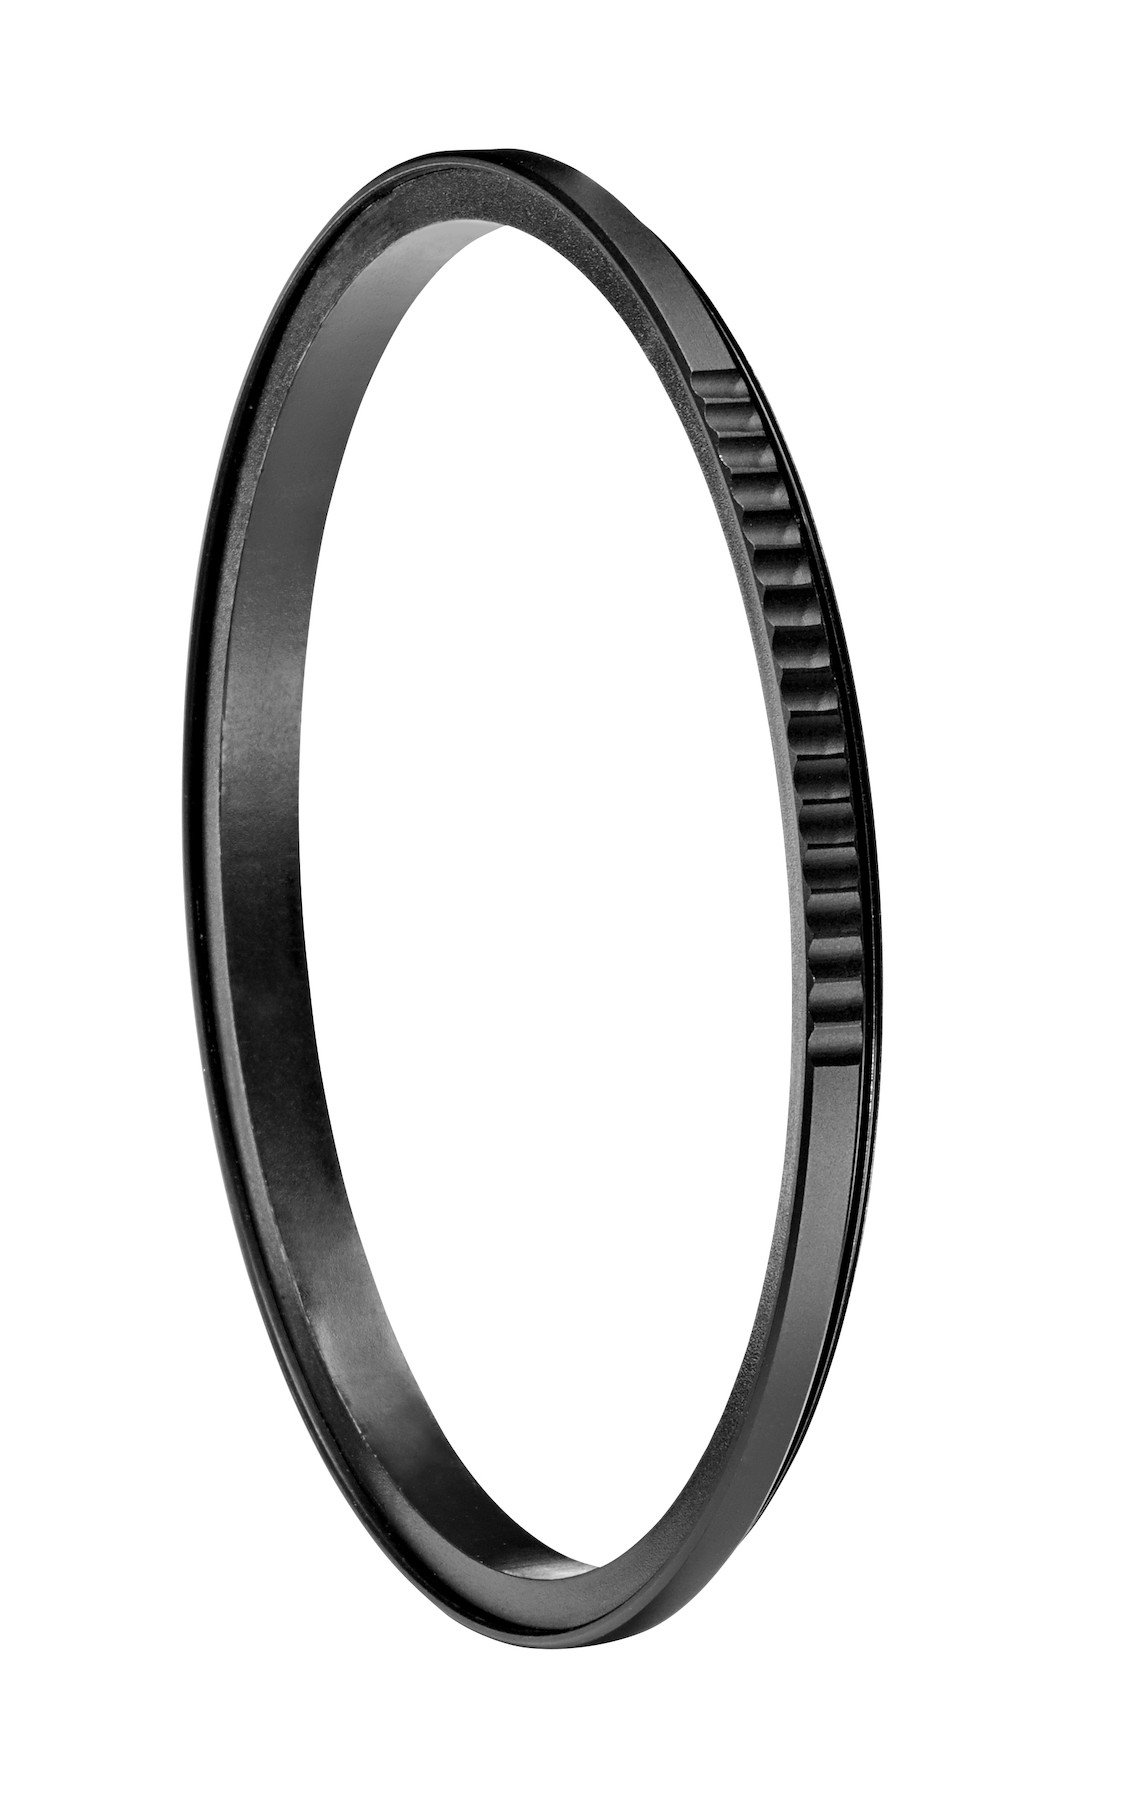 62 mm Xume Lens Adapter